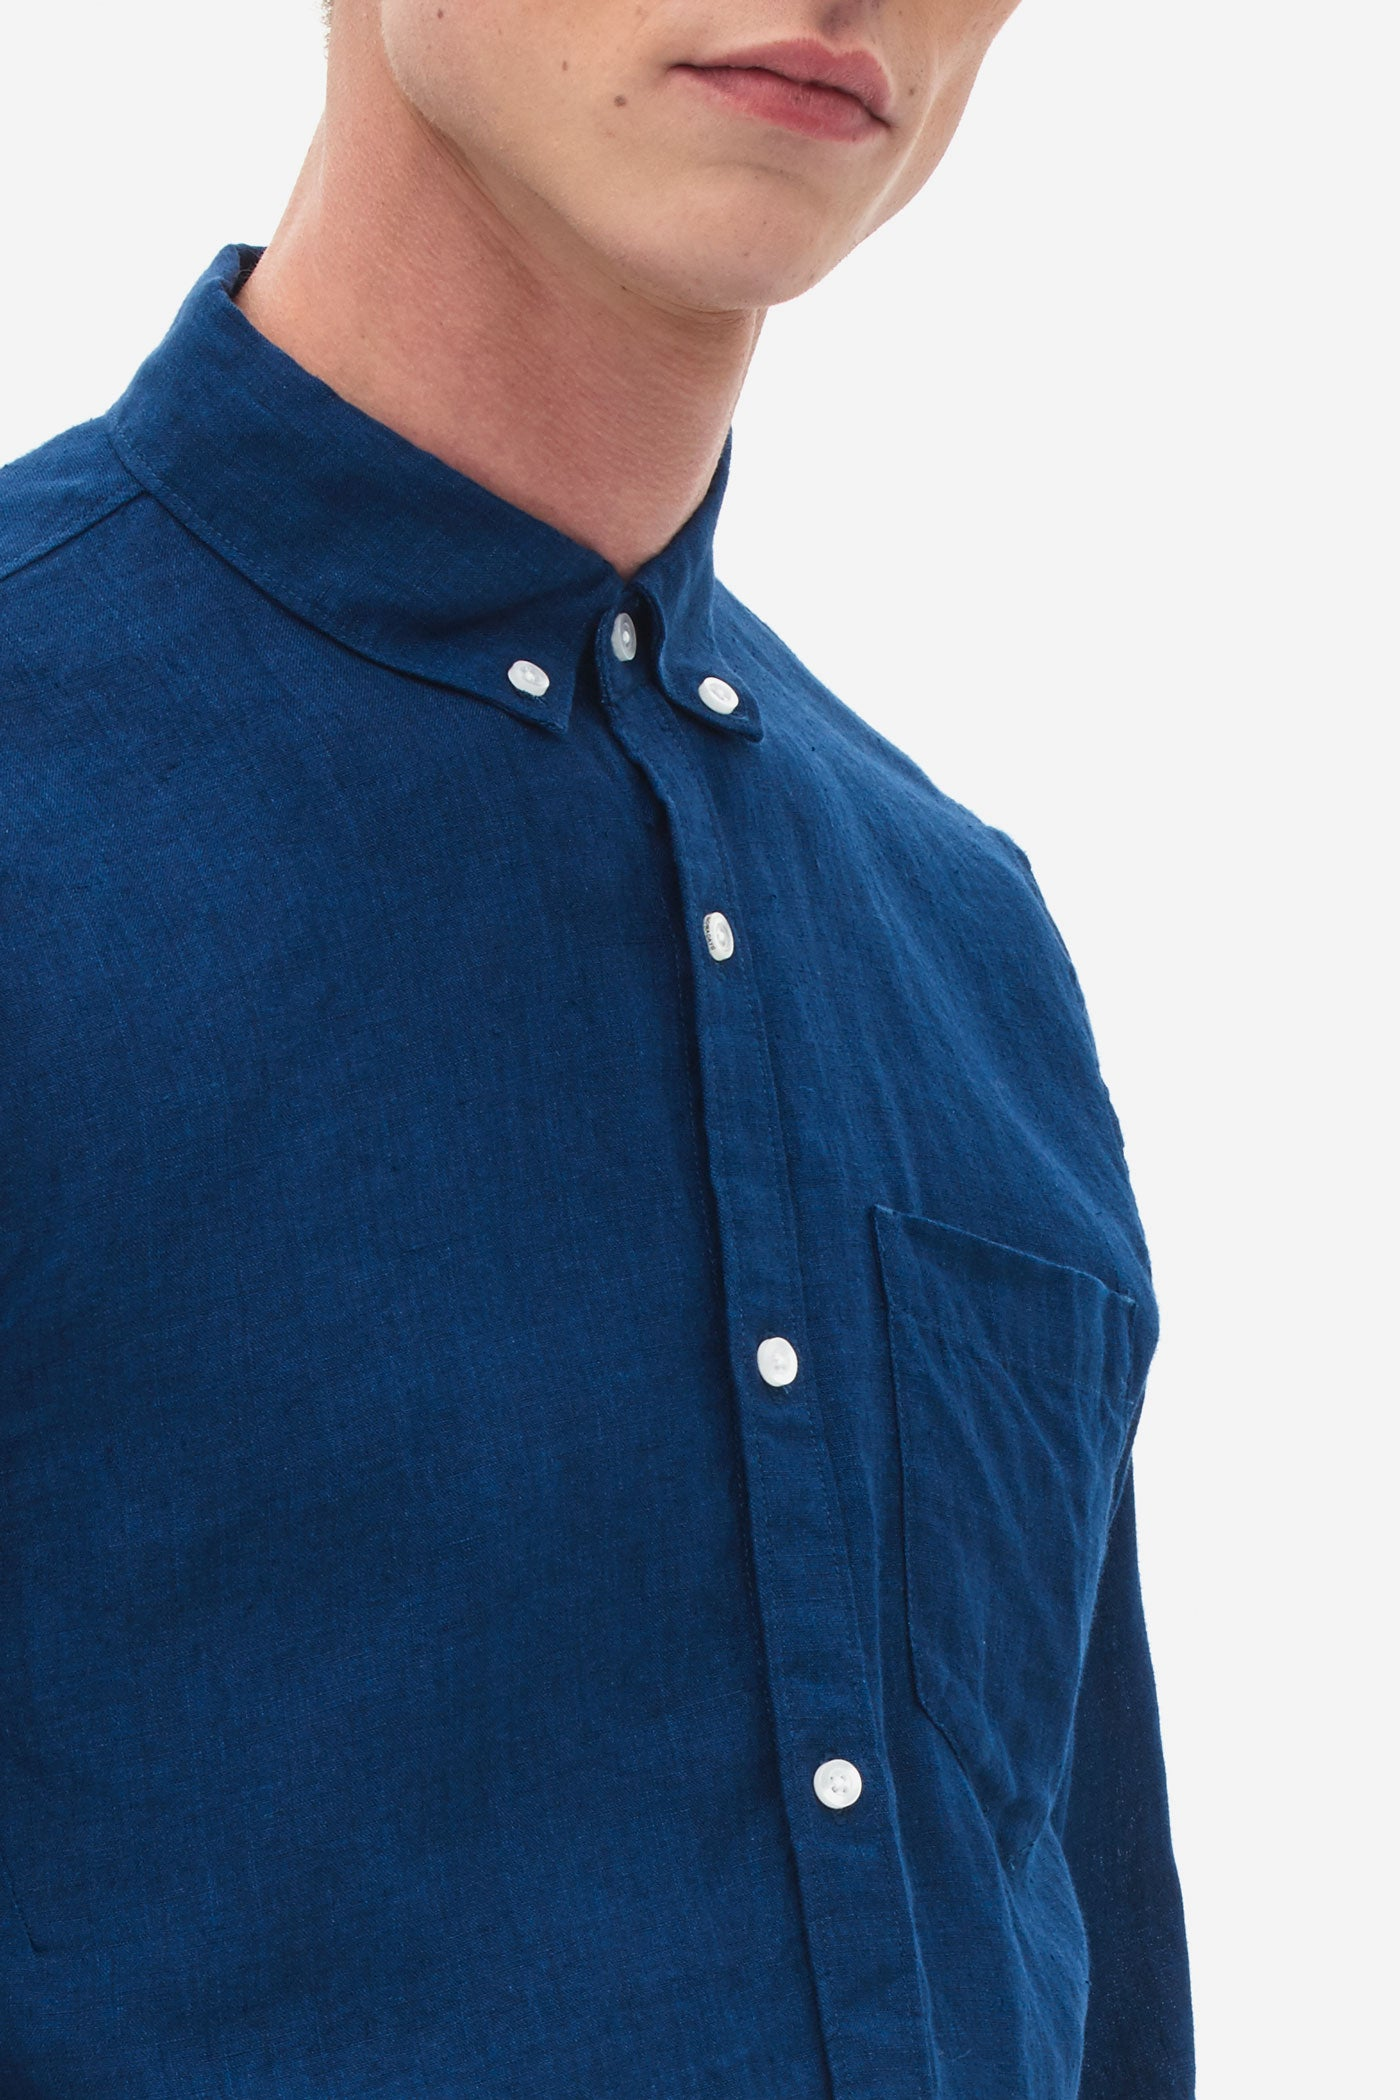 Button Down Linen Shirt medival blue